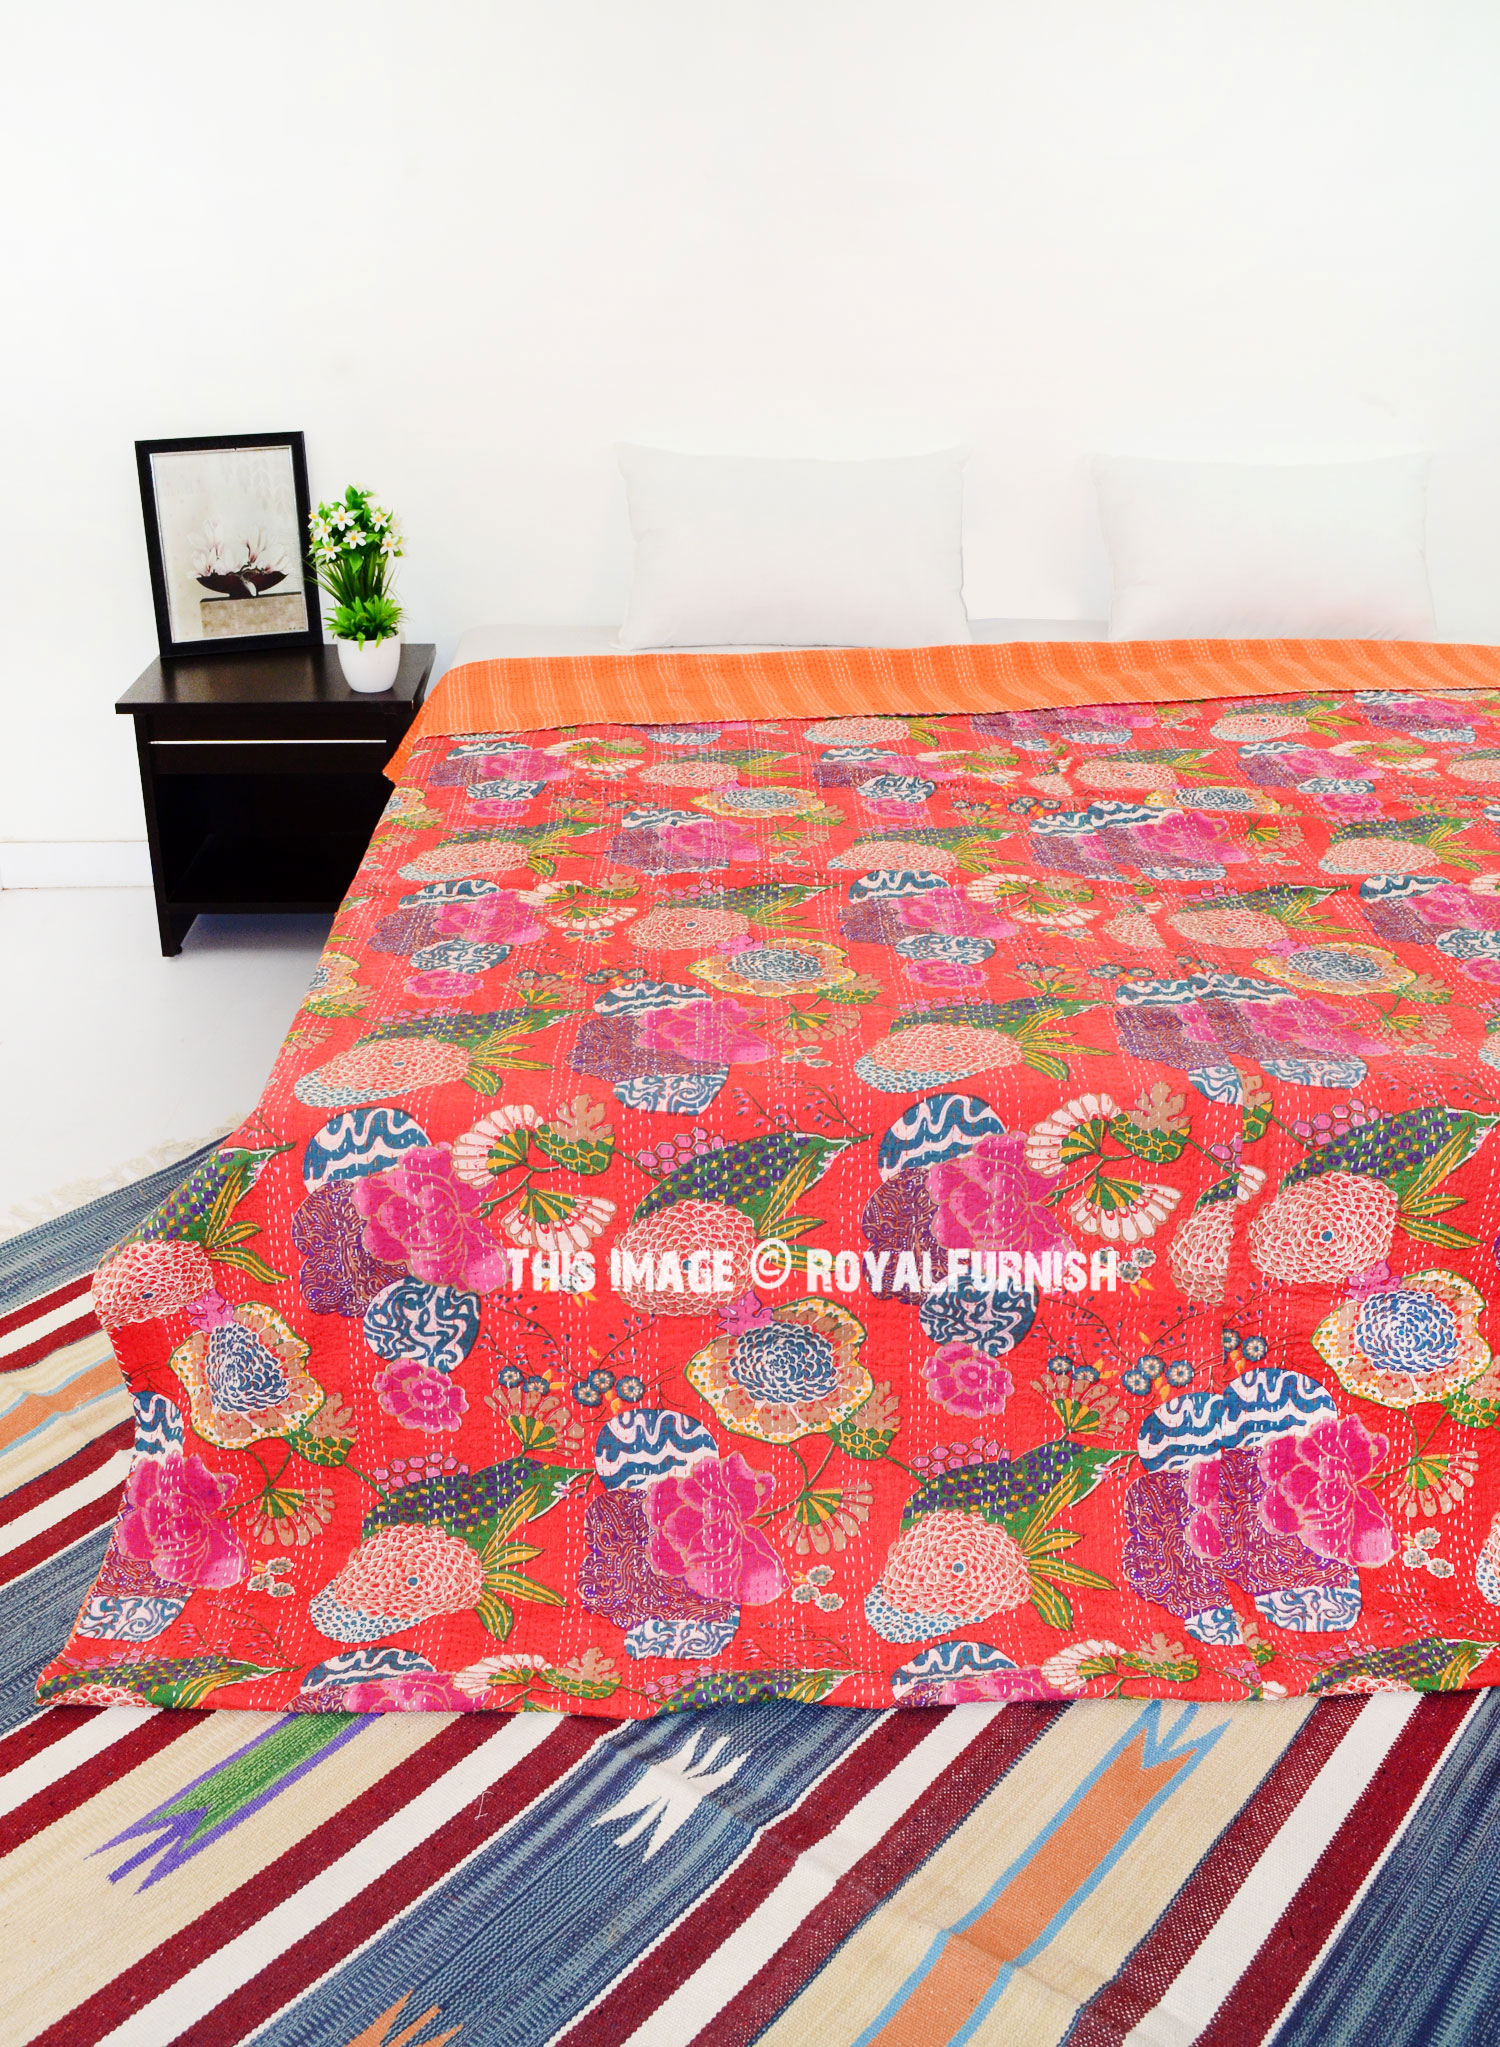 Orange Floral Patterned Indian Kantha Quilt Bedding Throw